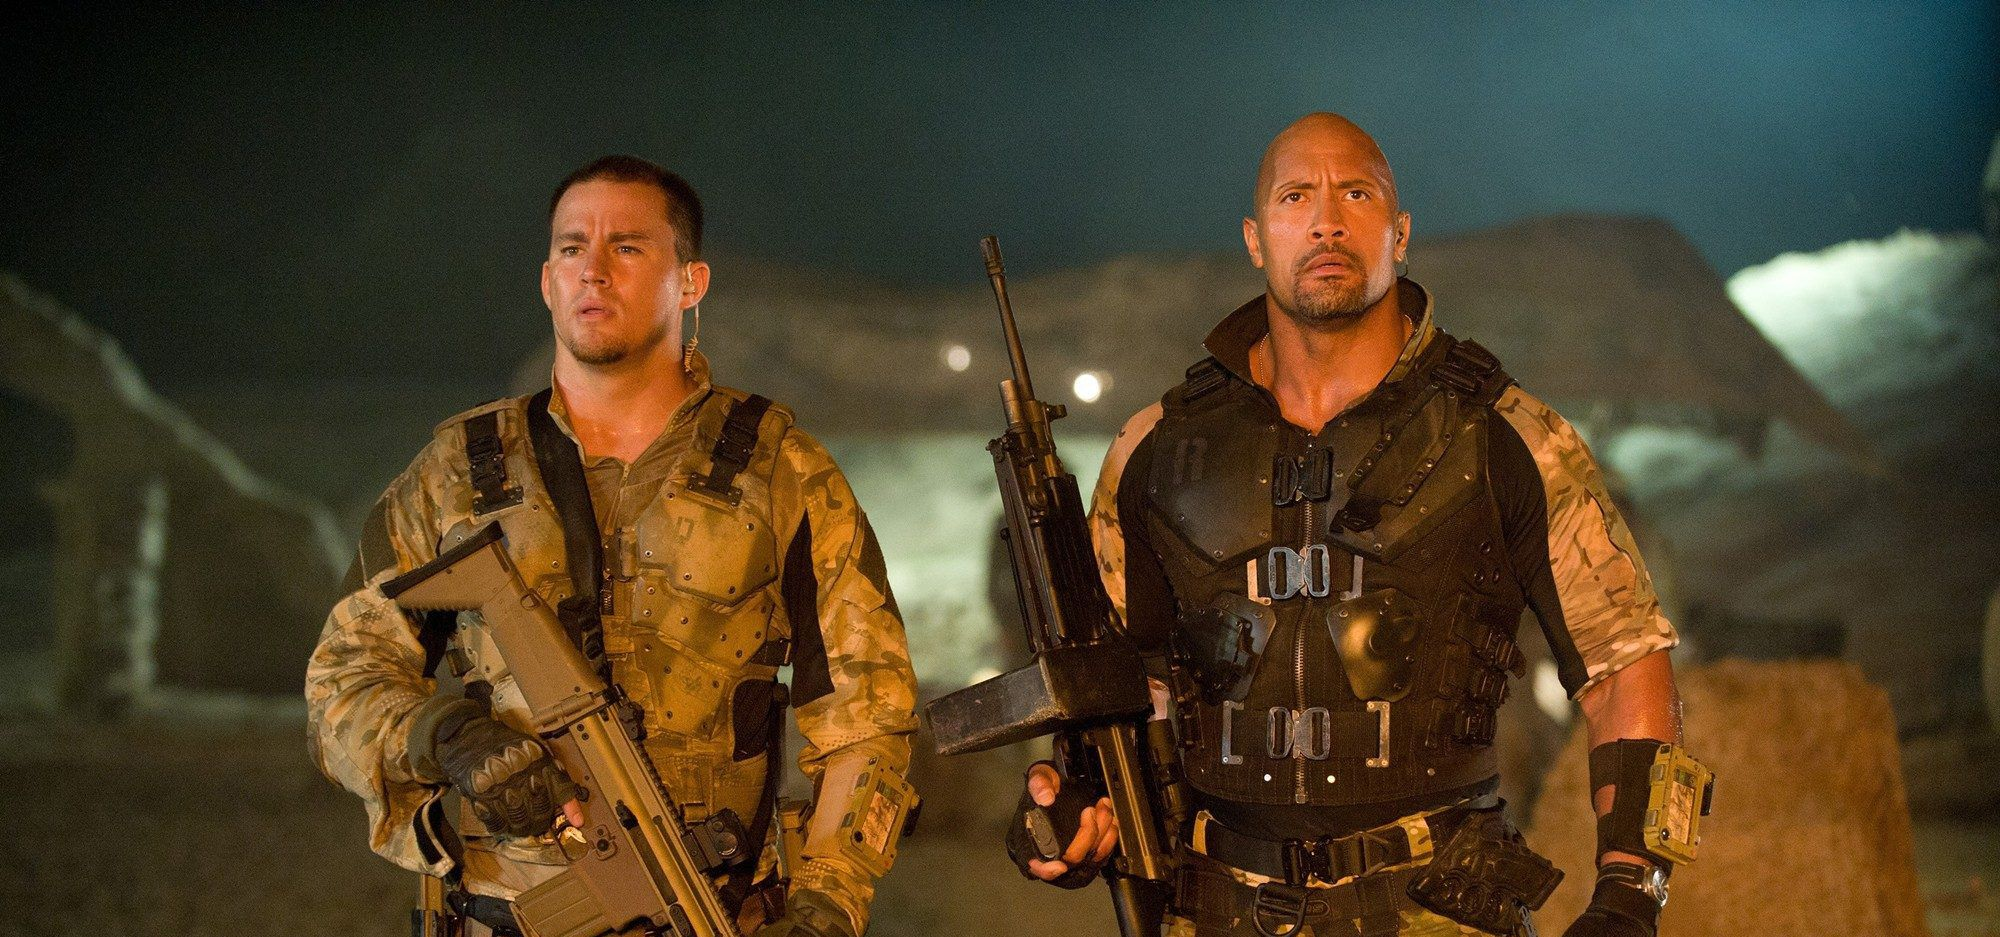 An image from G.I. Joe: Retaliation